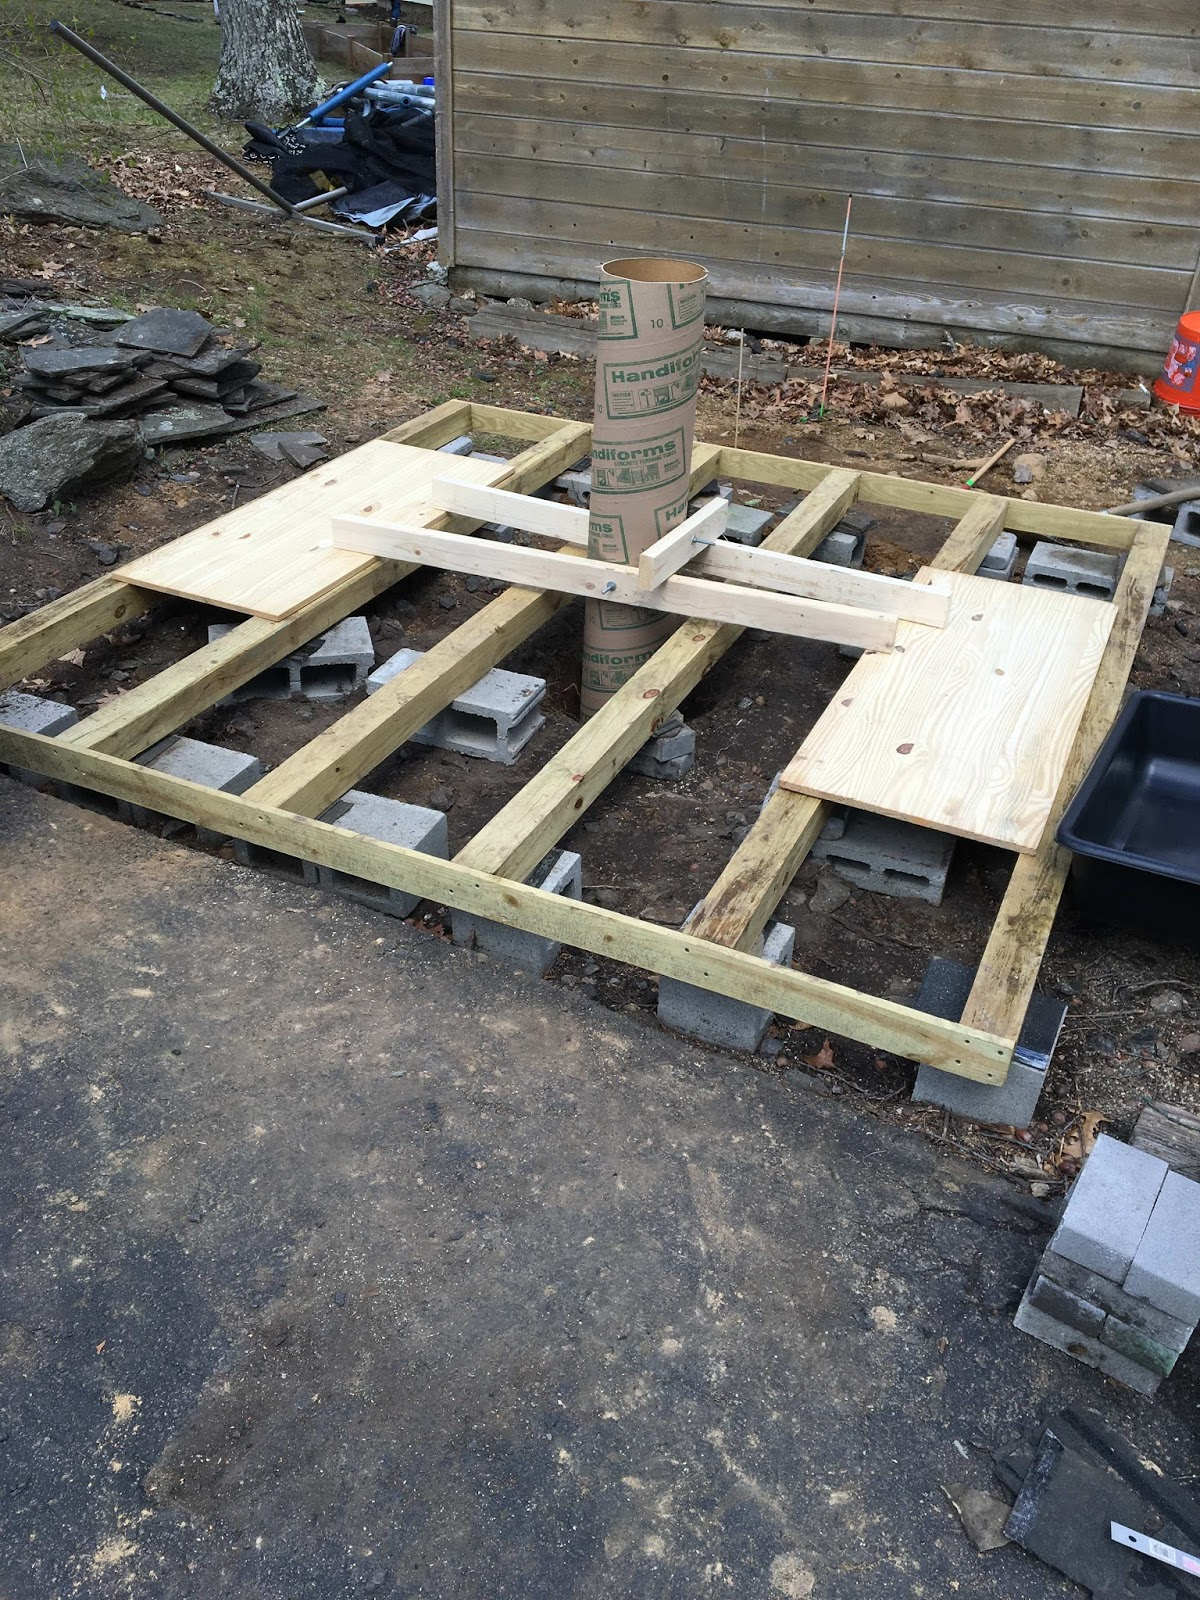 After Leveling The Ground As Best As Possible, Six 7u0027 10.5u0027 Pressure  Treated (PT) 4x4s Were Set On Paving Stones And Cinder Blocks Until They  Were Level.